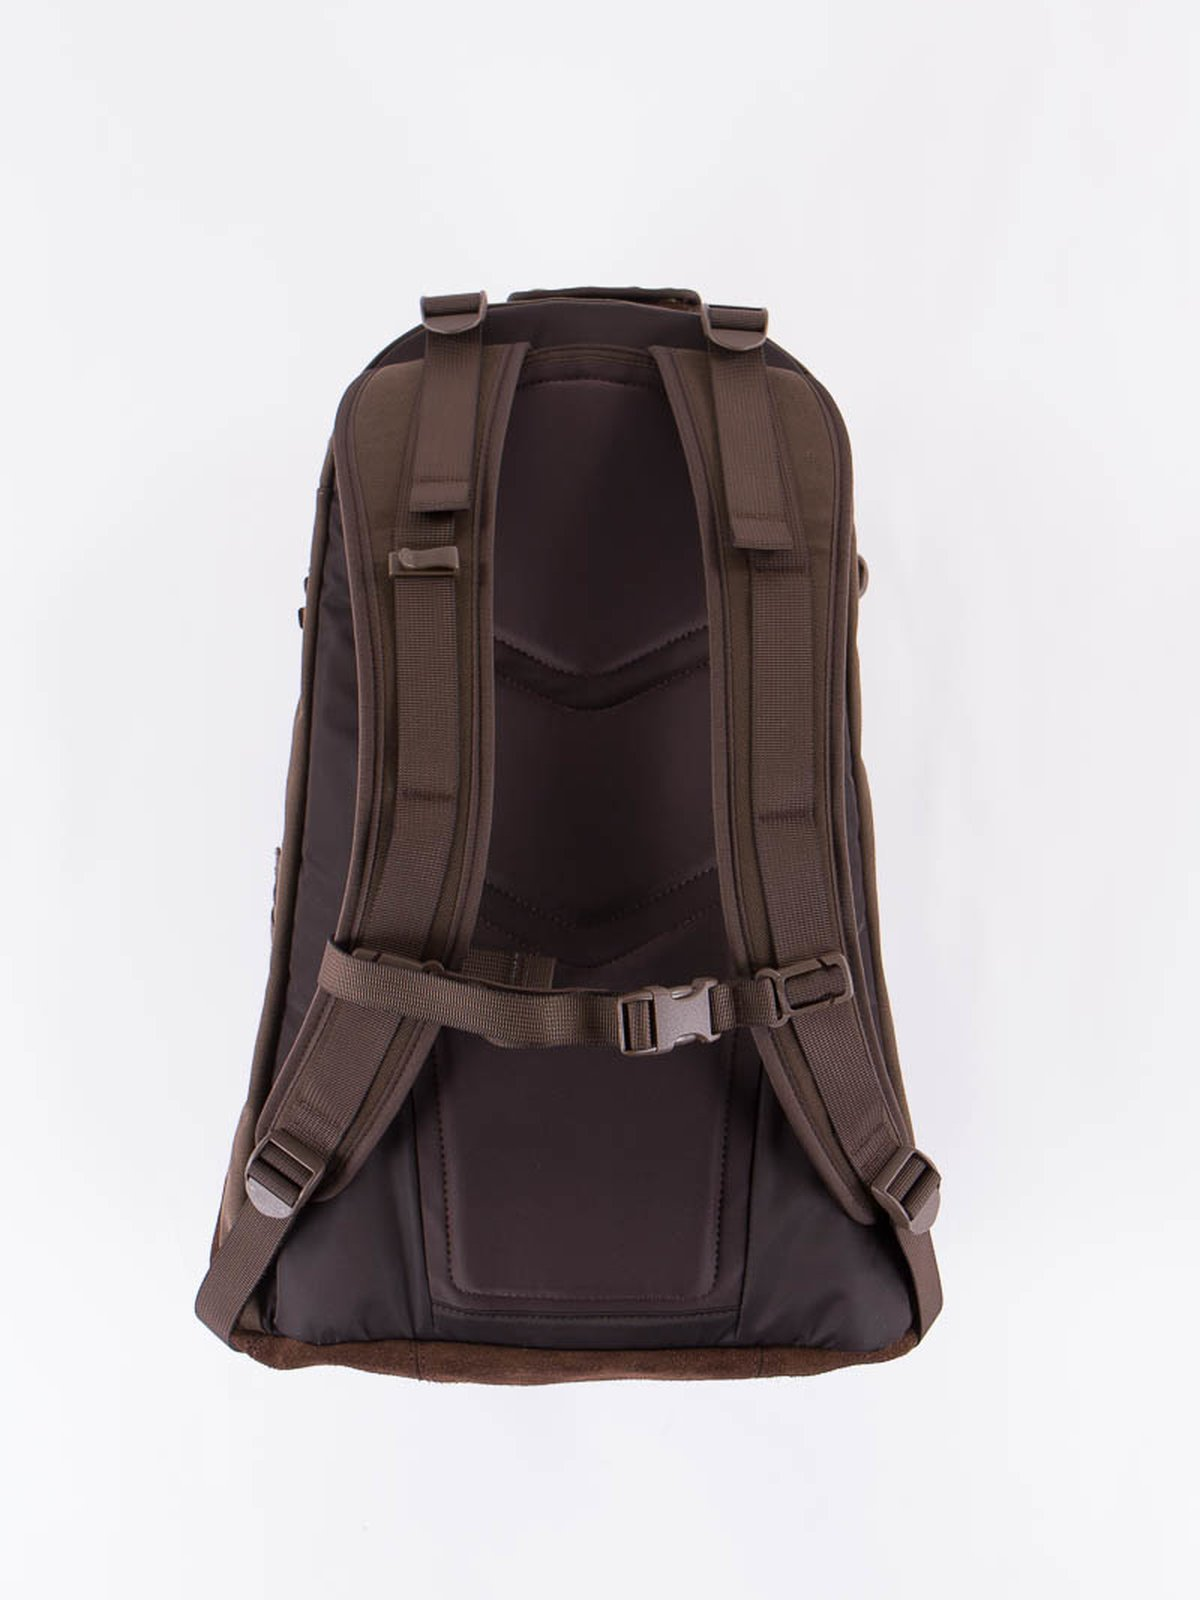 Brown 20L Cordura Backpack - Image 6